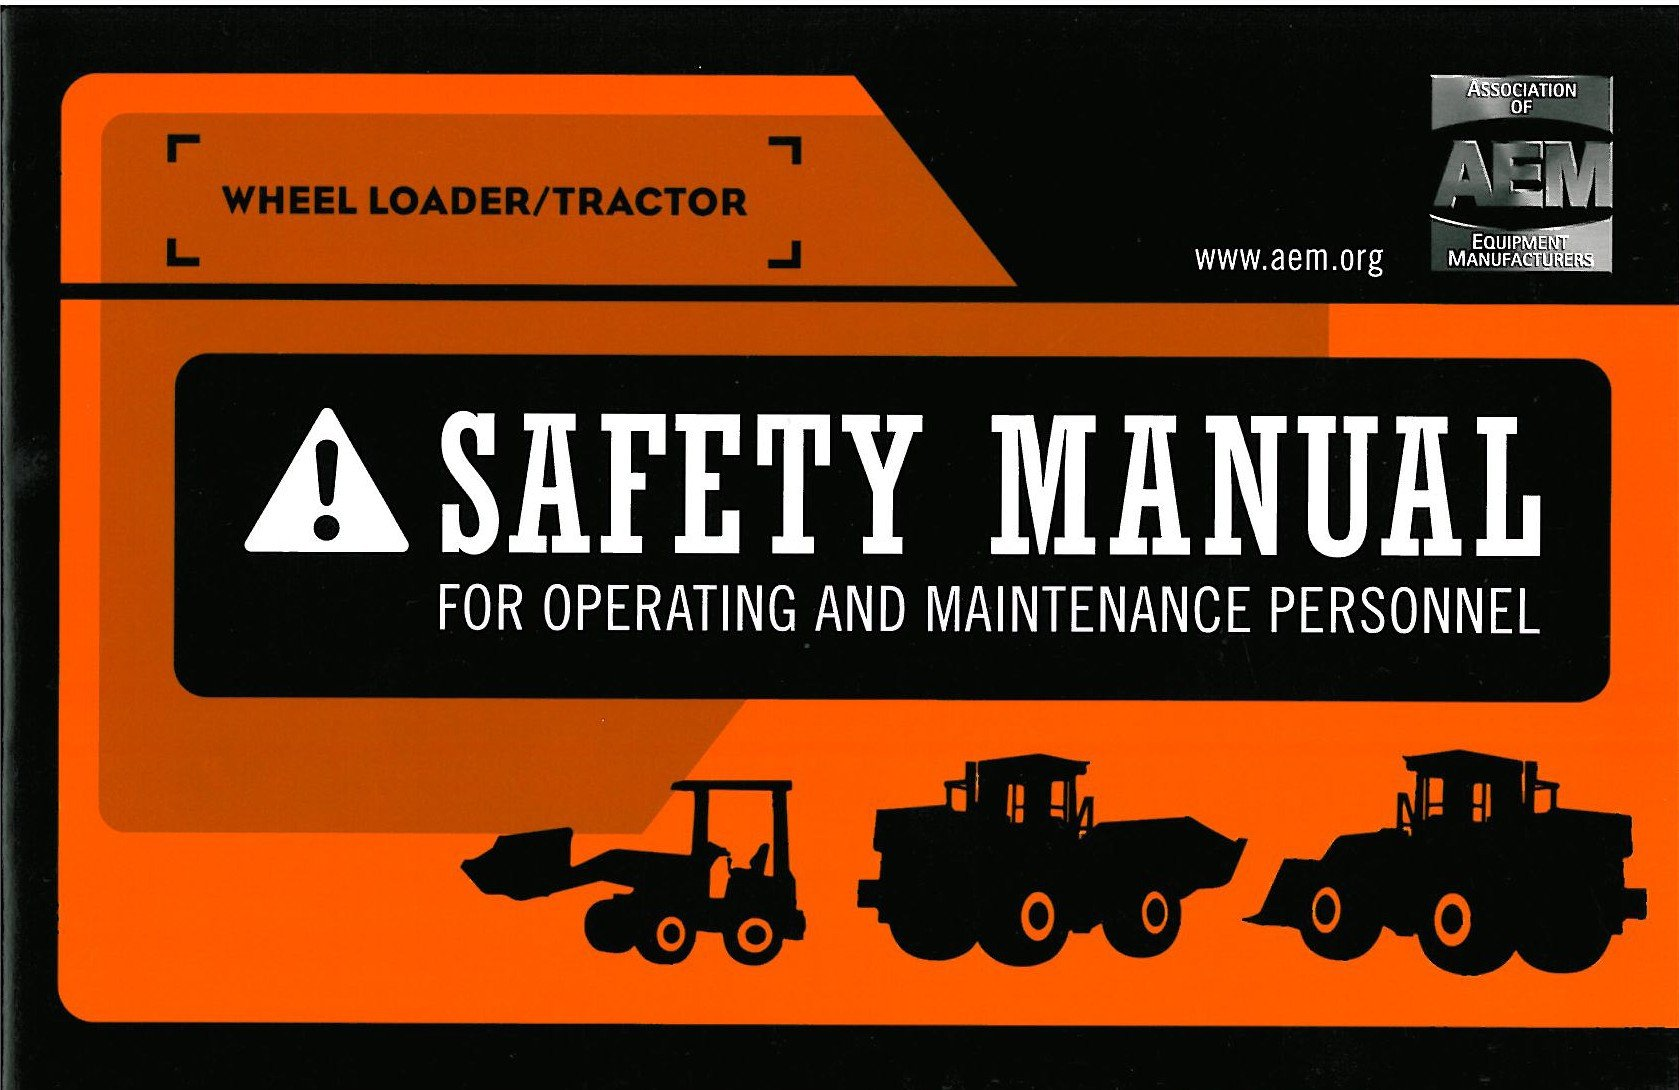 Wheel TractorLoader Safety Manual  Tractor Loader Safety And